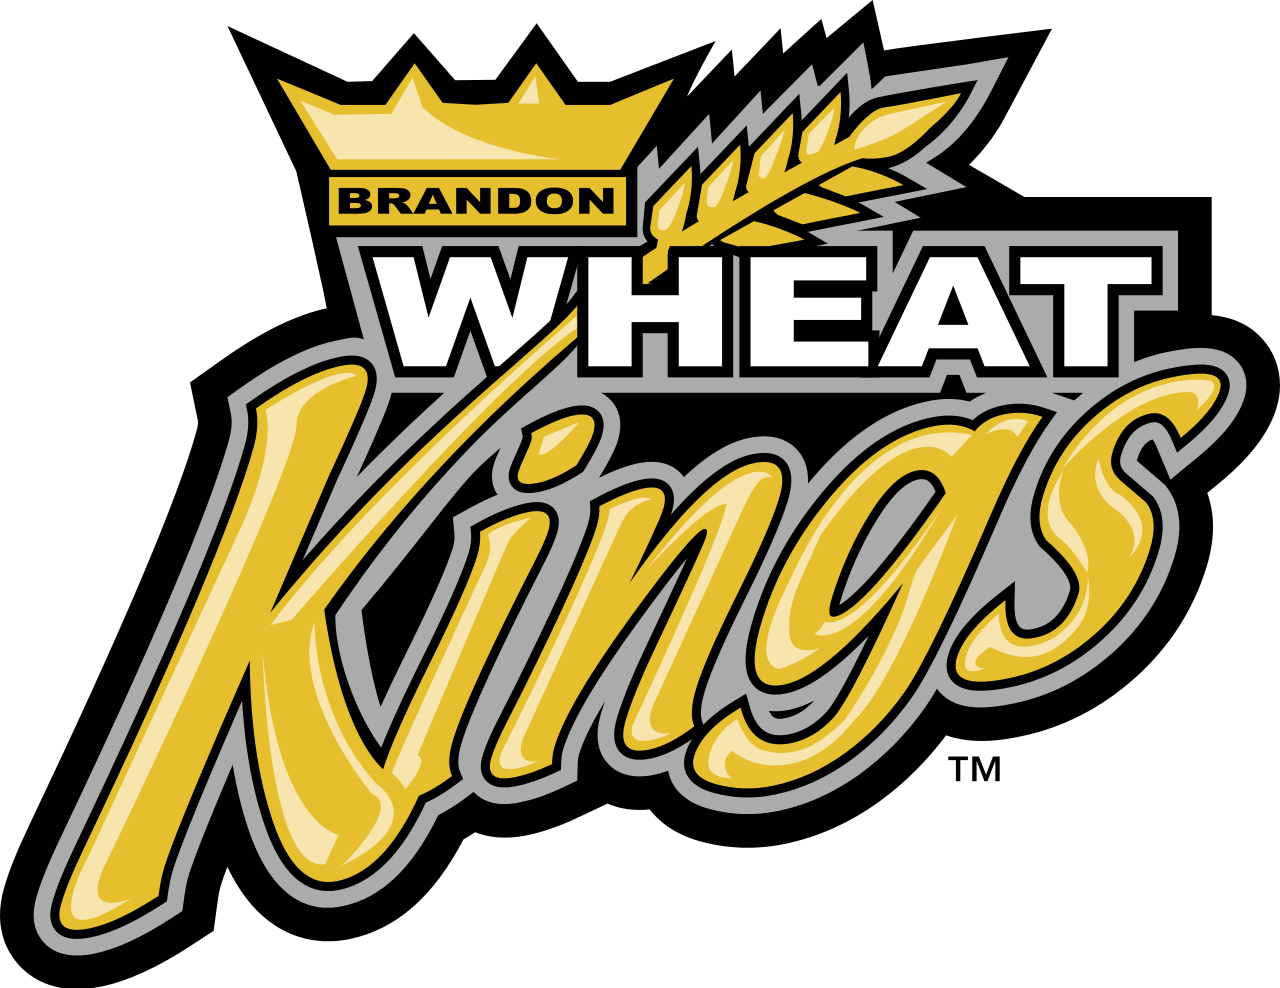 Hockey Logos Brandon Wheat Kings Western Hockey League Brandon Manitoba